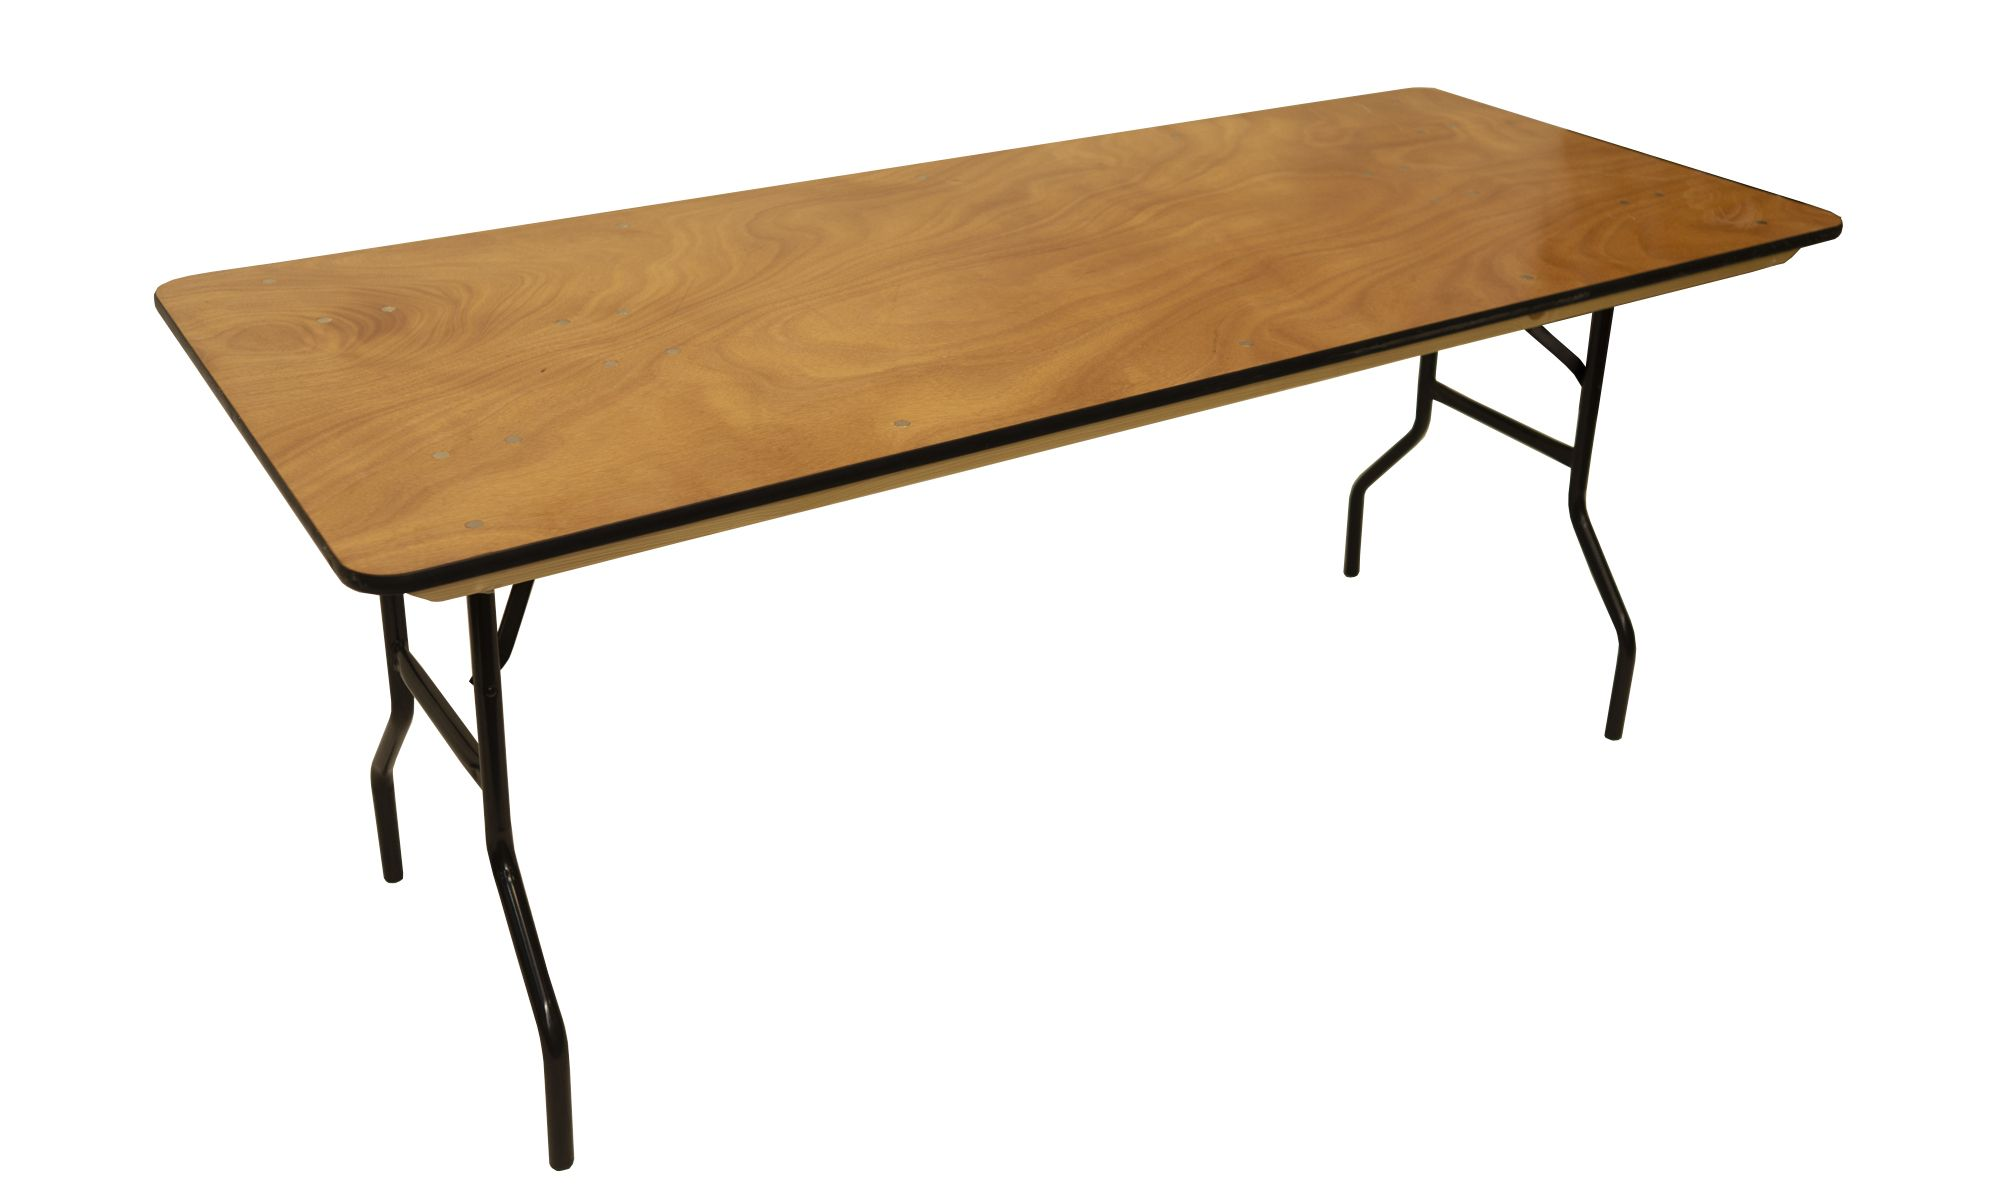 Did you know we sold Standard Wood Folding Table? 🤯 We have them in 2 different styles: Rectangular and Circular. For easy storage the legs unlock and fold in! 🥳🥳 For more items come check our website www.cspevents.com or email us at info@cspevents.com #foldabletable #table #wood #woodentable #partyrentals #hospitality #decor #follow #obsessed #partyrentalltd #rentalfurniture #events #pinterest #homedecor #basic #basictables #repost #essential #essentials